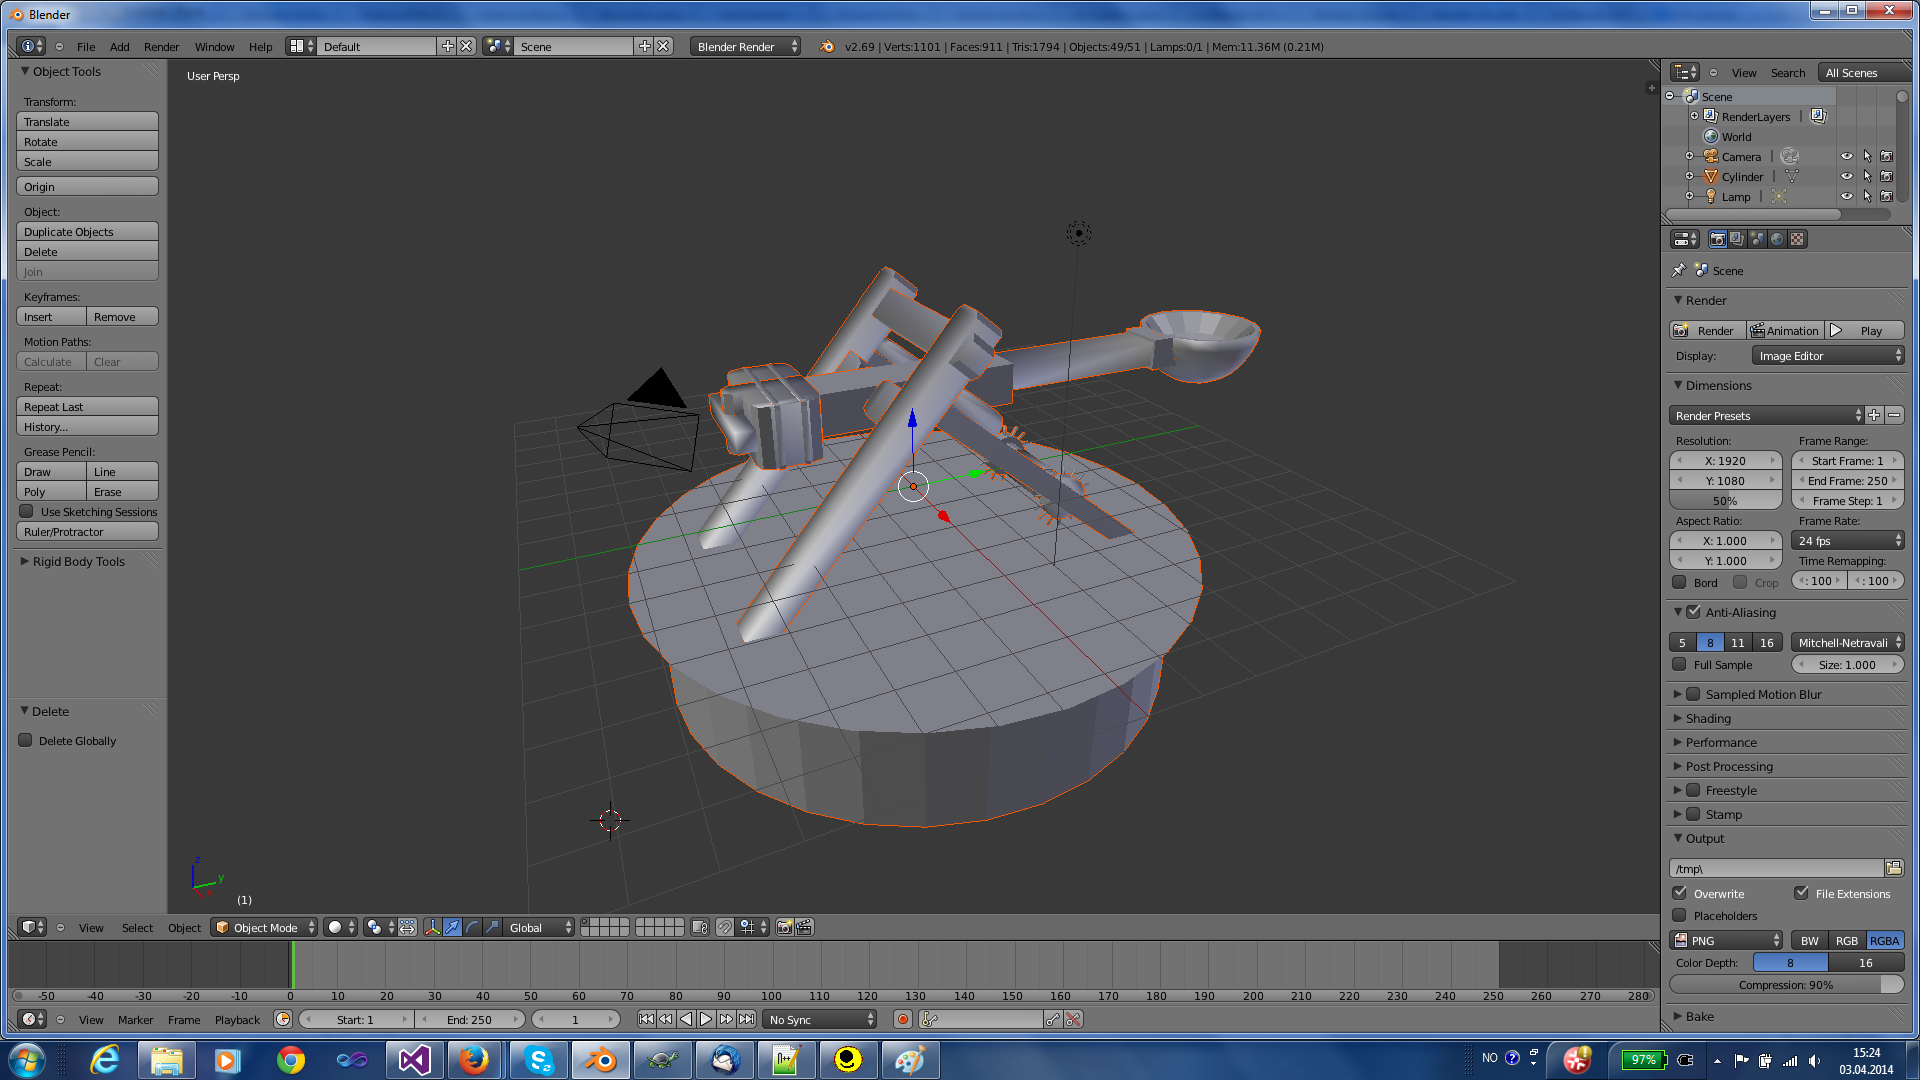 Import or make an object in Blender